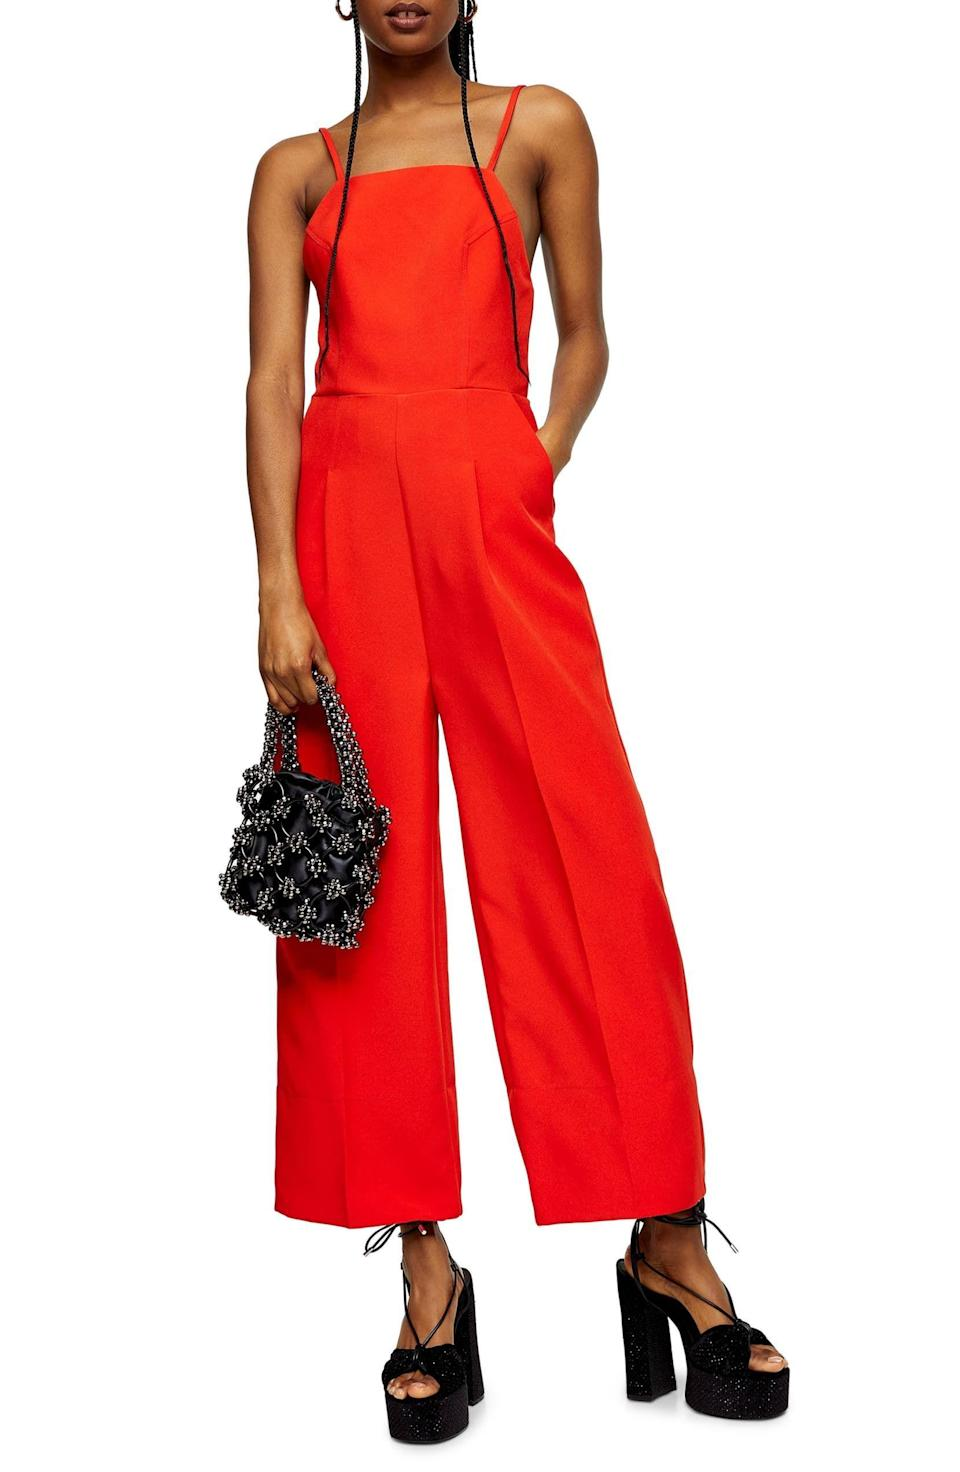 """<p><strong>TOPSHOP</strong></p><p>nordstrom.com</p><p><strong>$71.25</strong></p><p><a href=""""https://go.redirectingat.com?id=74968X1596630&url=https%3A%2F%2Fshop.nordstrom.com%2Fs%2Ftopshop-strappy-back-wide-leg-jumpsuit%2F5549125&sref=https%3A%2F%2Fwww.goodhousekeeping.com%2Fholidays%2Fg32302046%2Ffourth-of-july-outfit-ideas%2F"""" rel=""""nofollow noopener"""" target=""""_blank"""" data-ylk=""""slk:Shop Now"""" class=""""link rapid-noclick-resp"""">Shop Now</a></p><p>July Fourth is a busy holiday, and many of us spend the day going from parade to picnic to party. Change from sneakers and colorful beads to heels and a star pattern purse, and this festive jumpsuit will keep you styling all day long. </p>"""